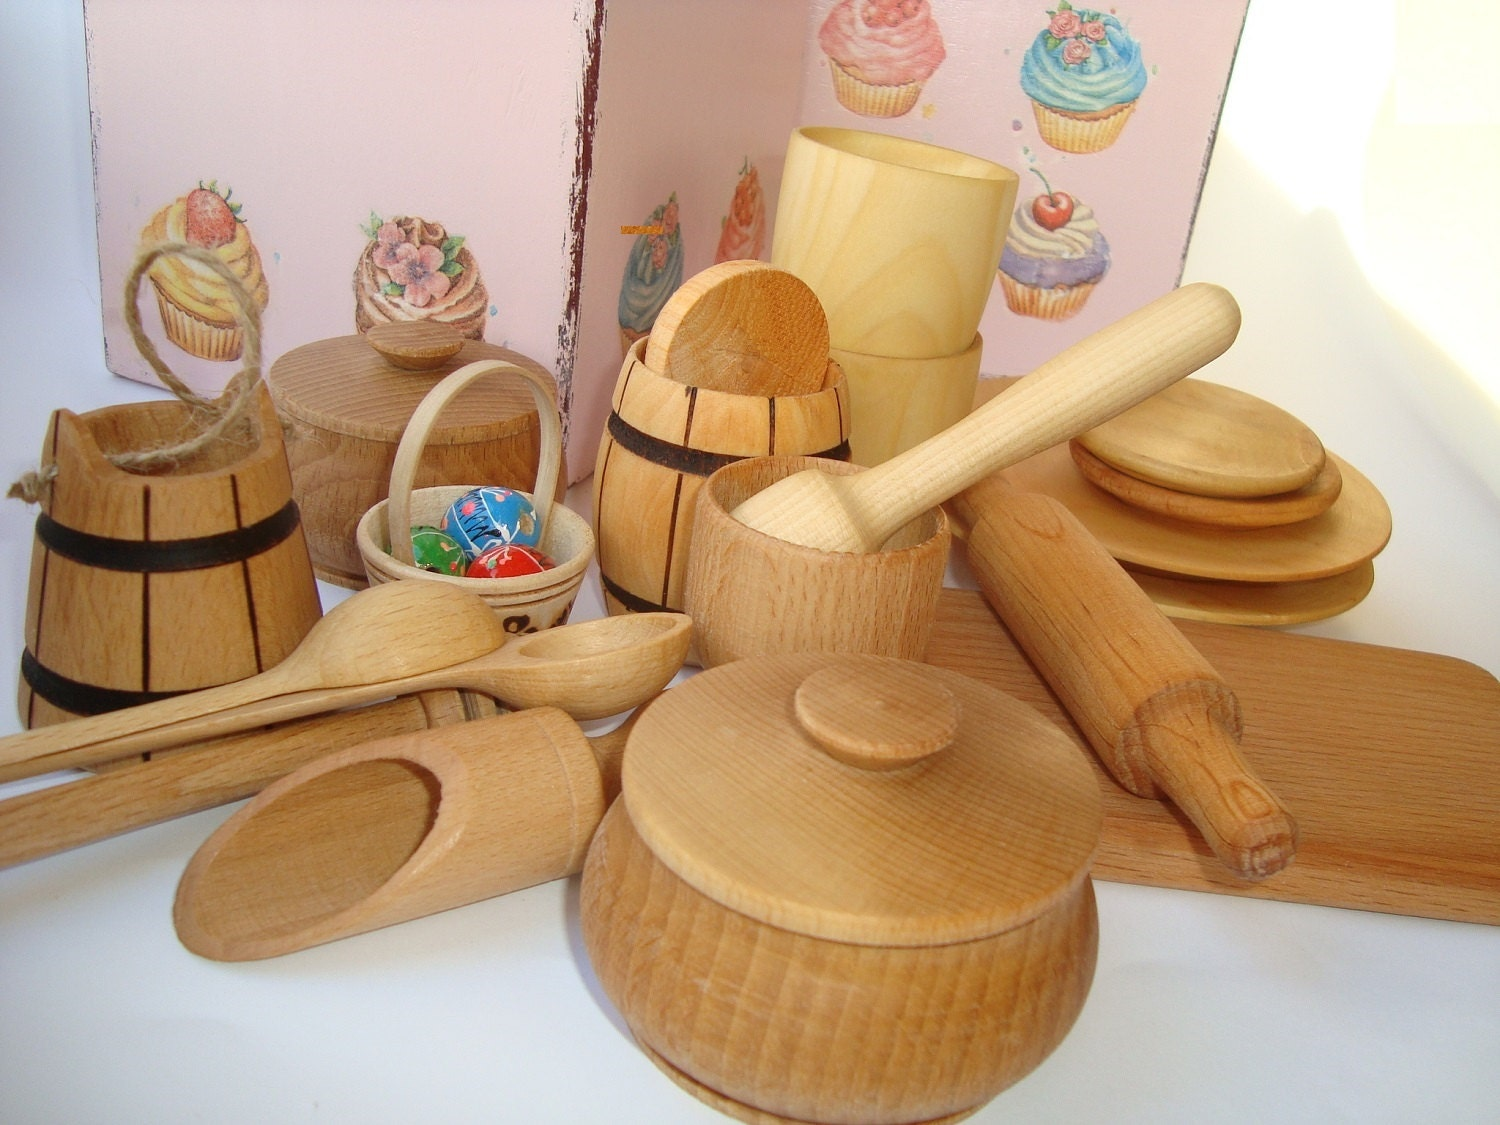 Kitchen set pcs in wood box for kids play wooden dishes